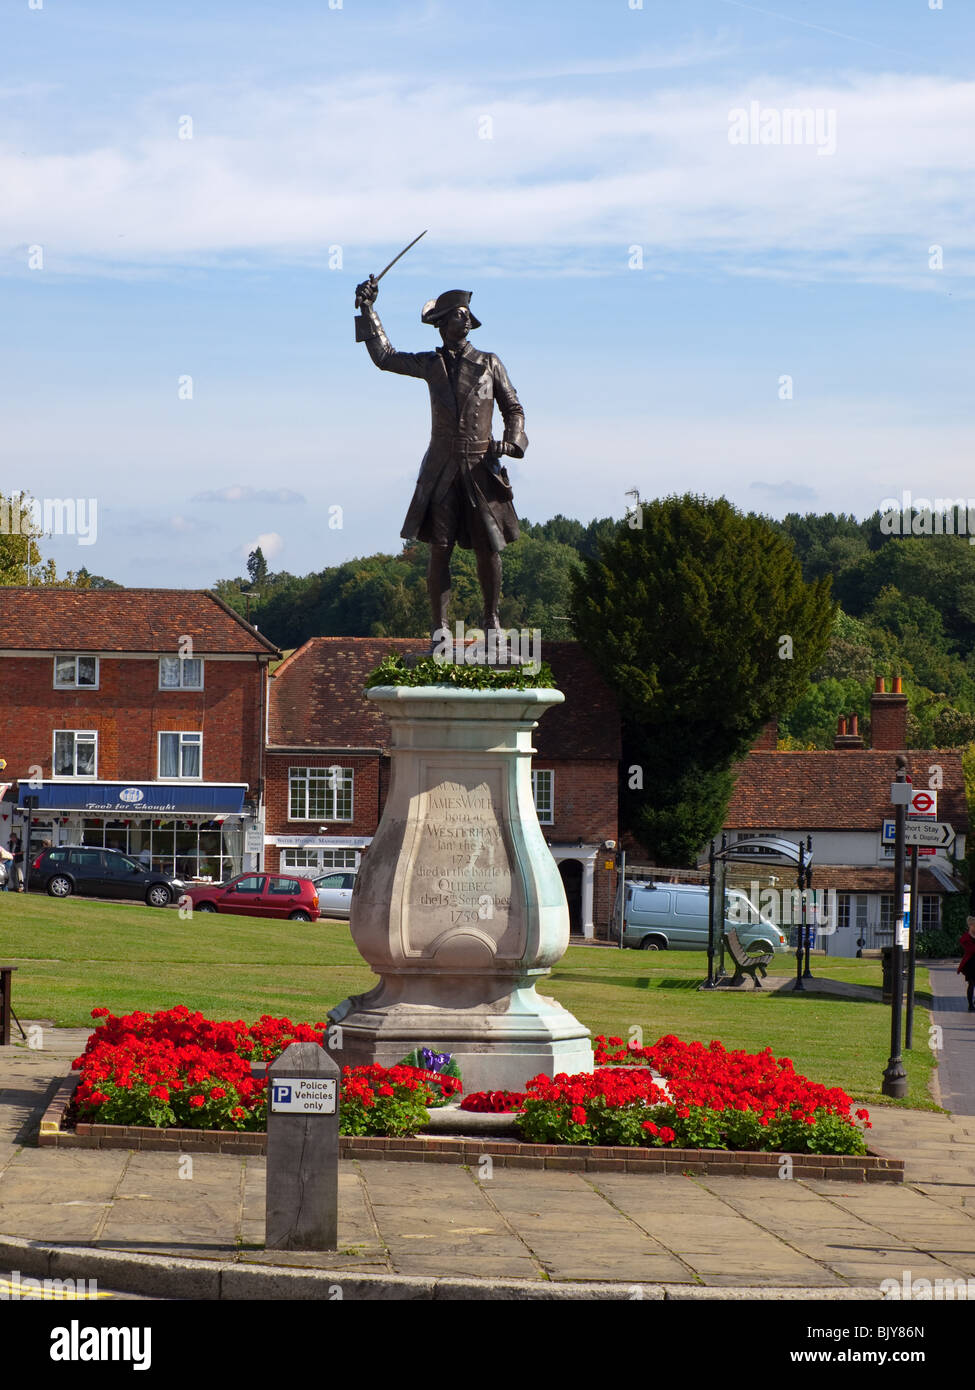 Statue of General James Wolfe on the green, Westerham, Kent, England, UK - Stock Image